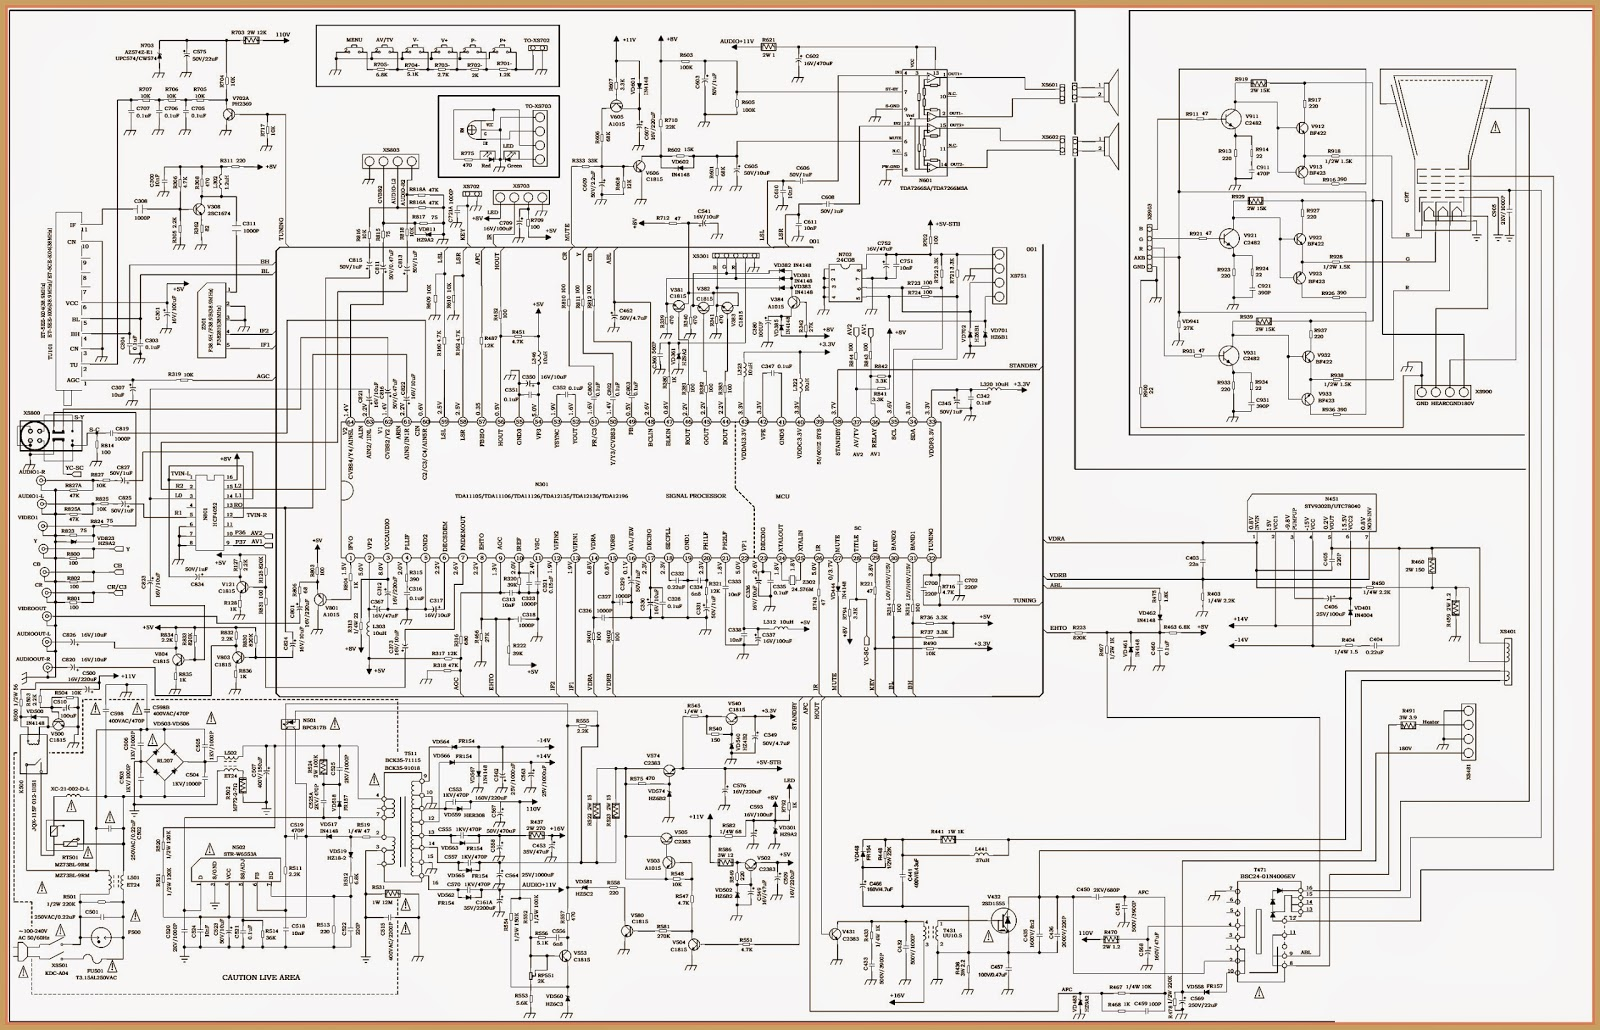 hight resolution of color tv kit circuit diagram full tda 11106 stv9302 based kitchen circuit diagram circuit diagram kit